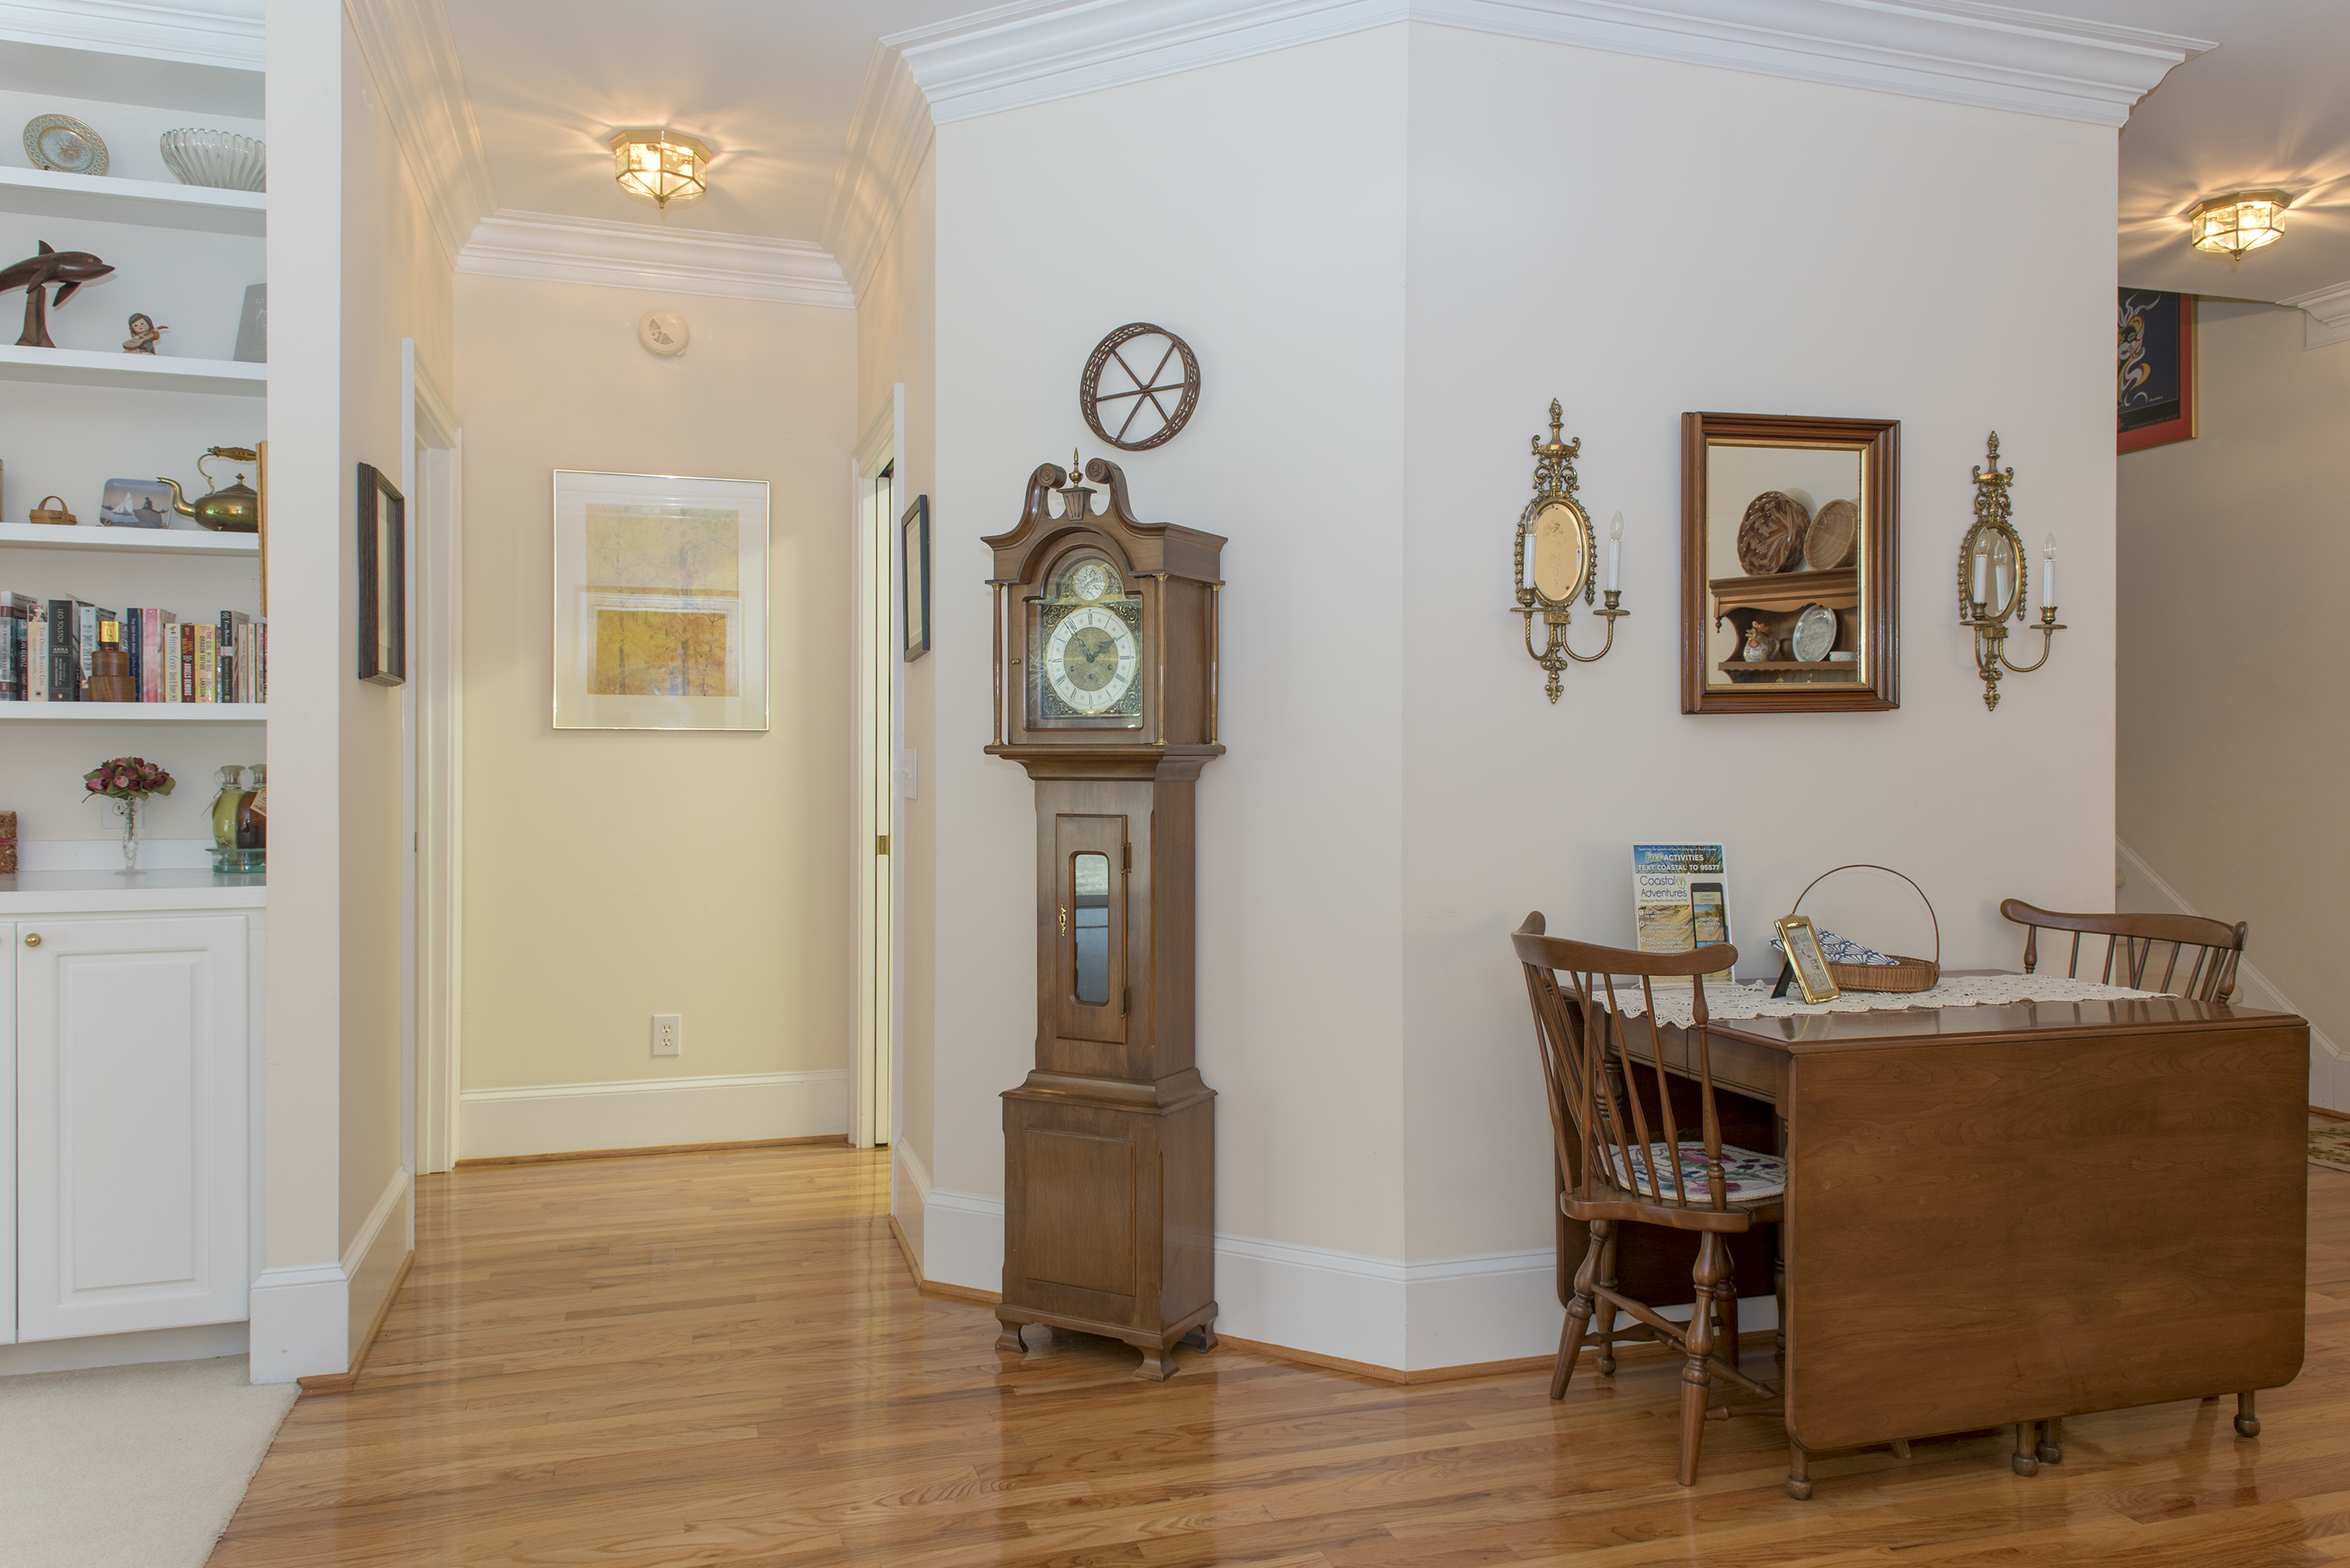 The main hall leads to the first floor bedrooms and a staircase to the remaining bedrooms.